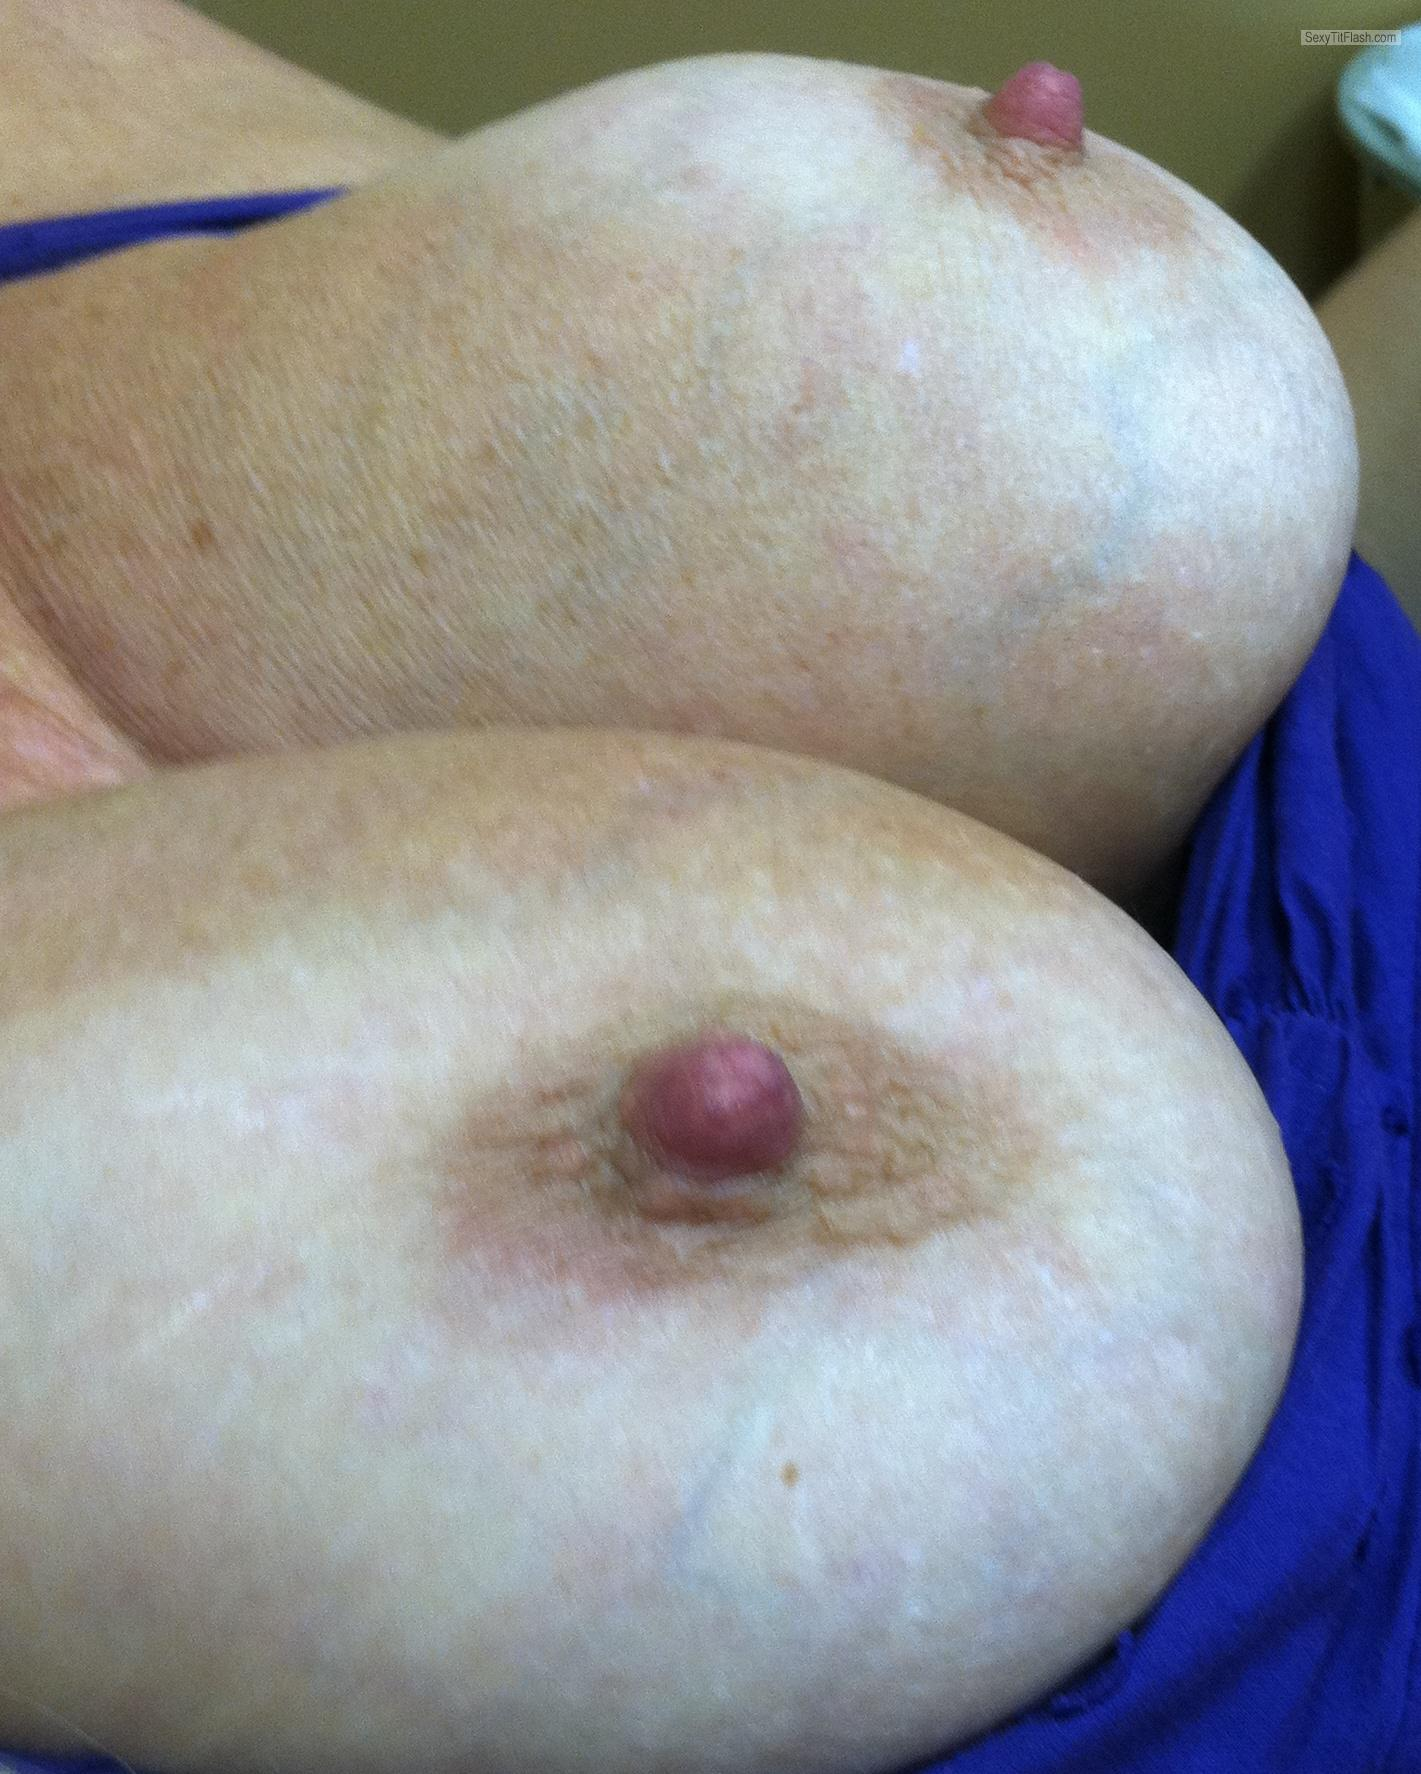 Tit Flash: Wife's Big Tits - Wifey from United States